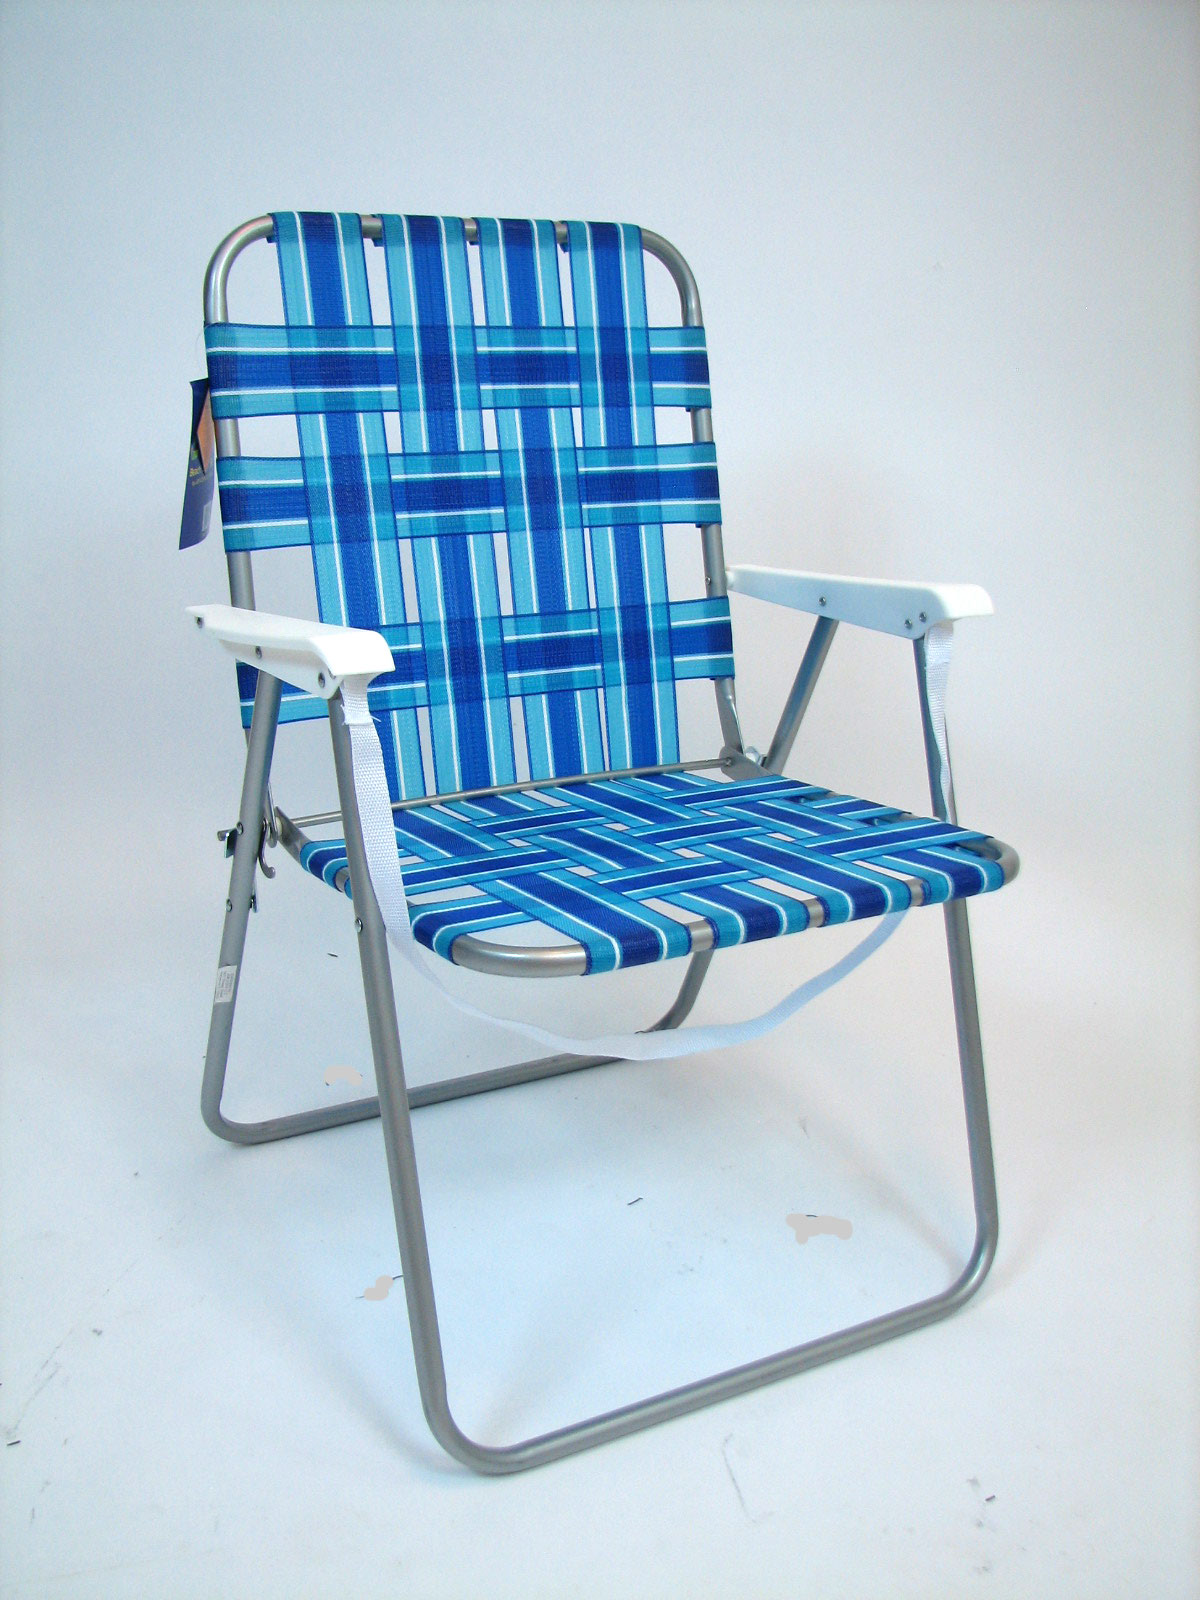 28 yard chairs opening day american lawn chair for Lawn chair webbing